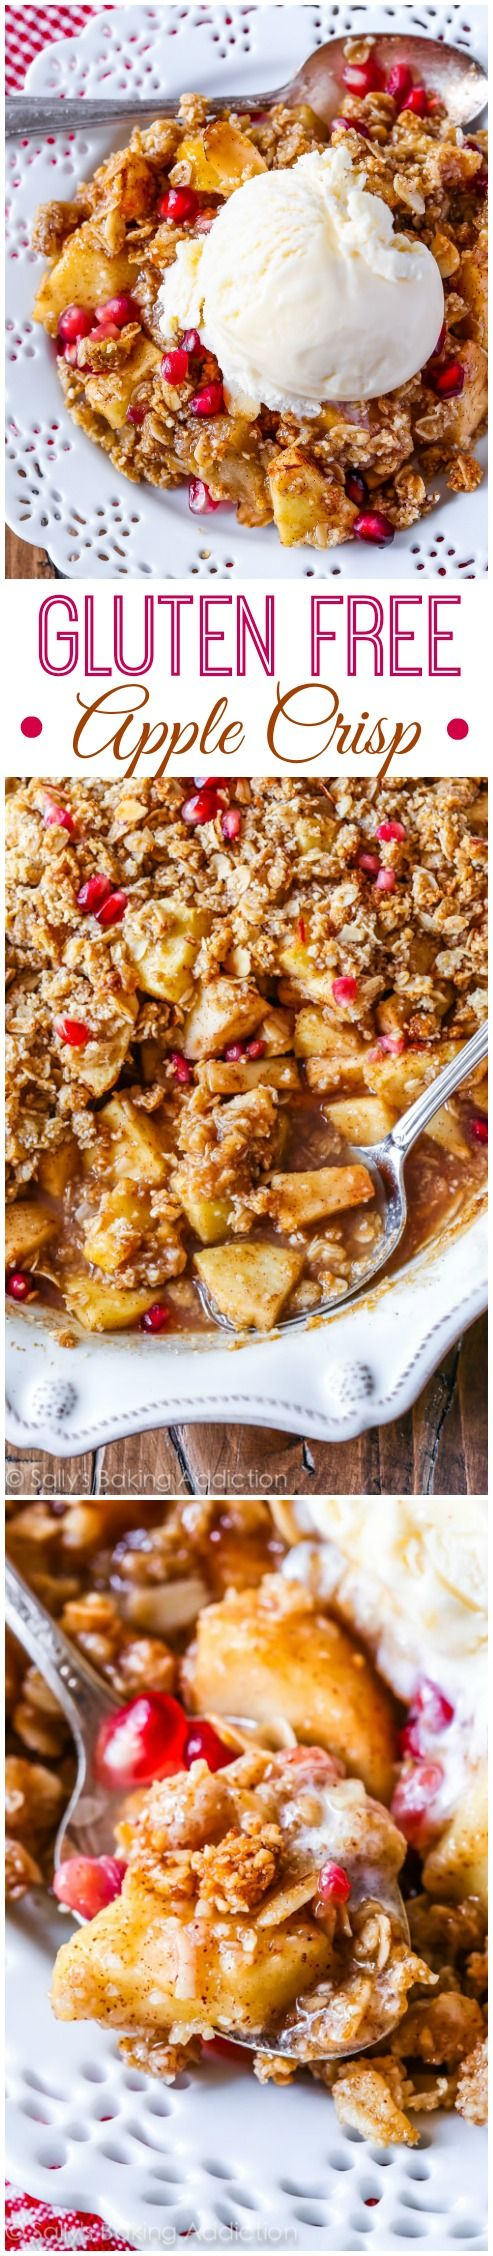 handbags bags Here  39 s a recipe for warm  gooey  brown sugar oat topped gluten free apple crisp  This flourless dessert exceeded my expectations  it  39 s AMAZING  And simple